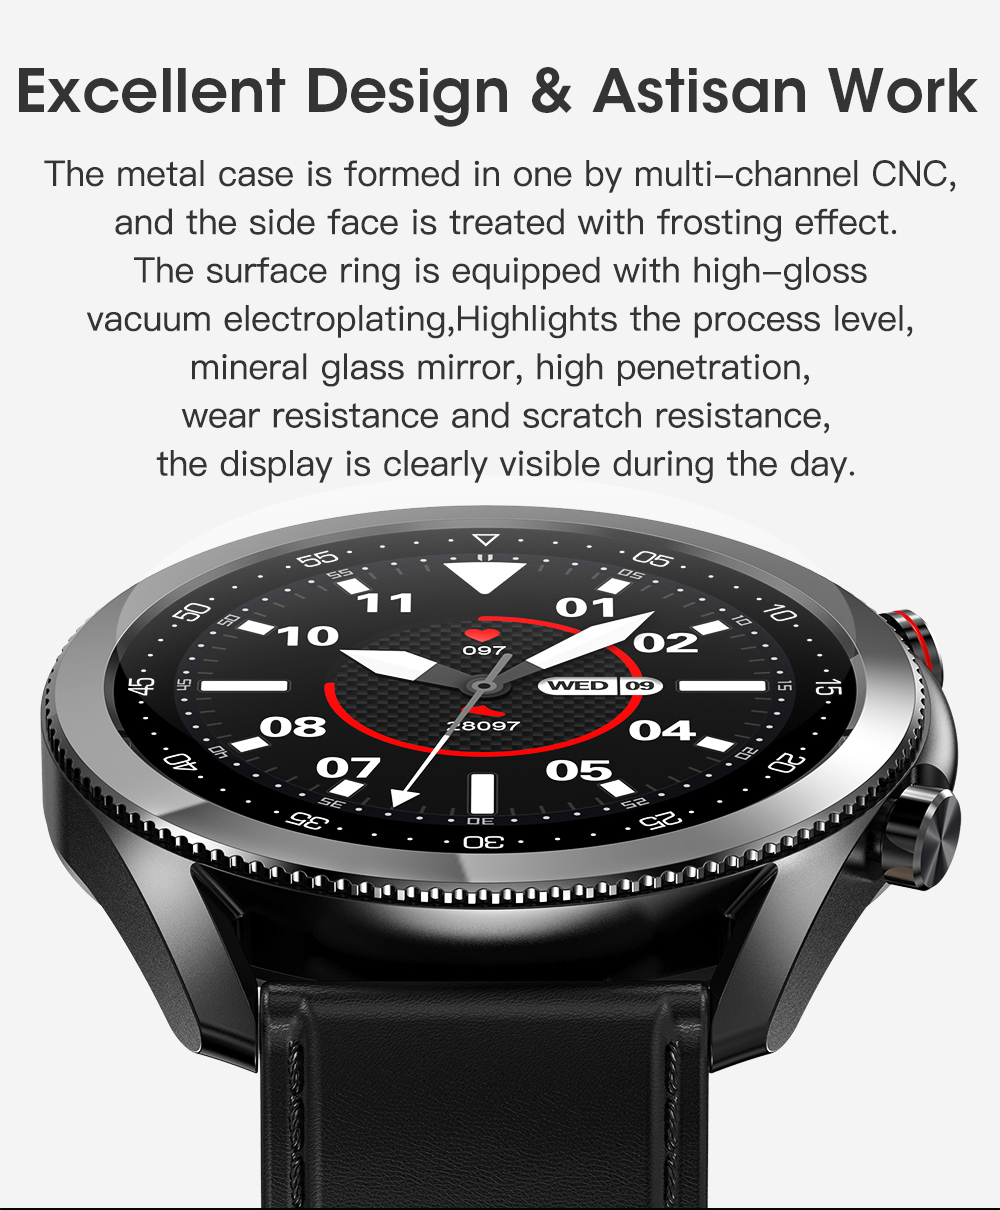 H8fd268035ac745839c980f6de91cb4c3W Timewolf Smart Watch Men 2021 IP68 Waterproof Android Full Touch Sports Smartwatch Bluetooth Call For Samsung Huawei Android IOS